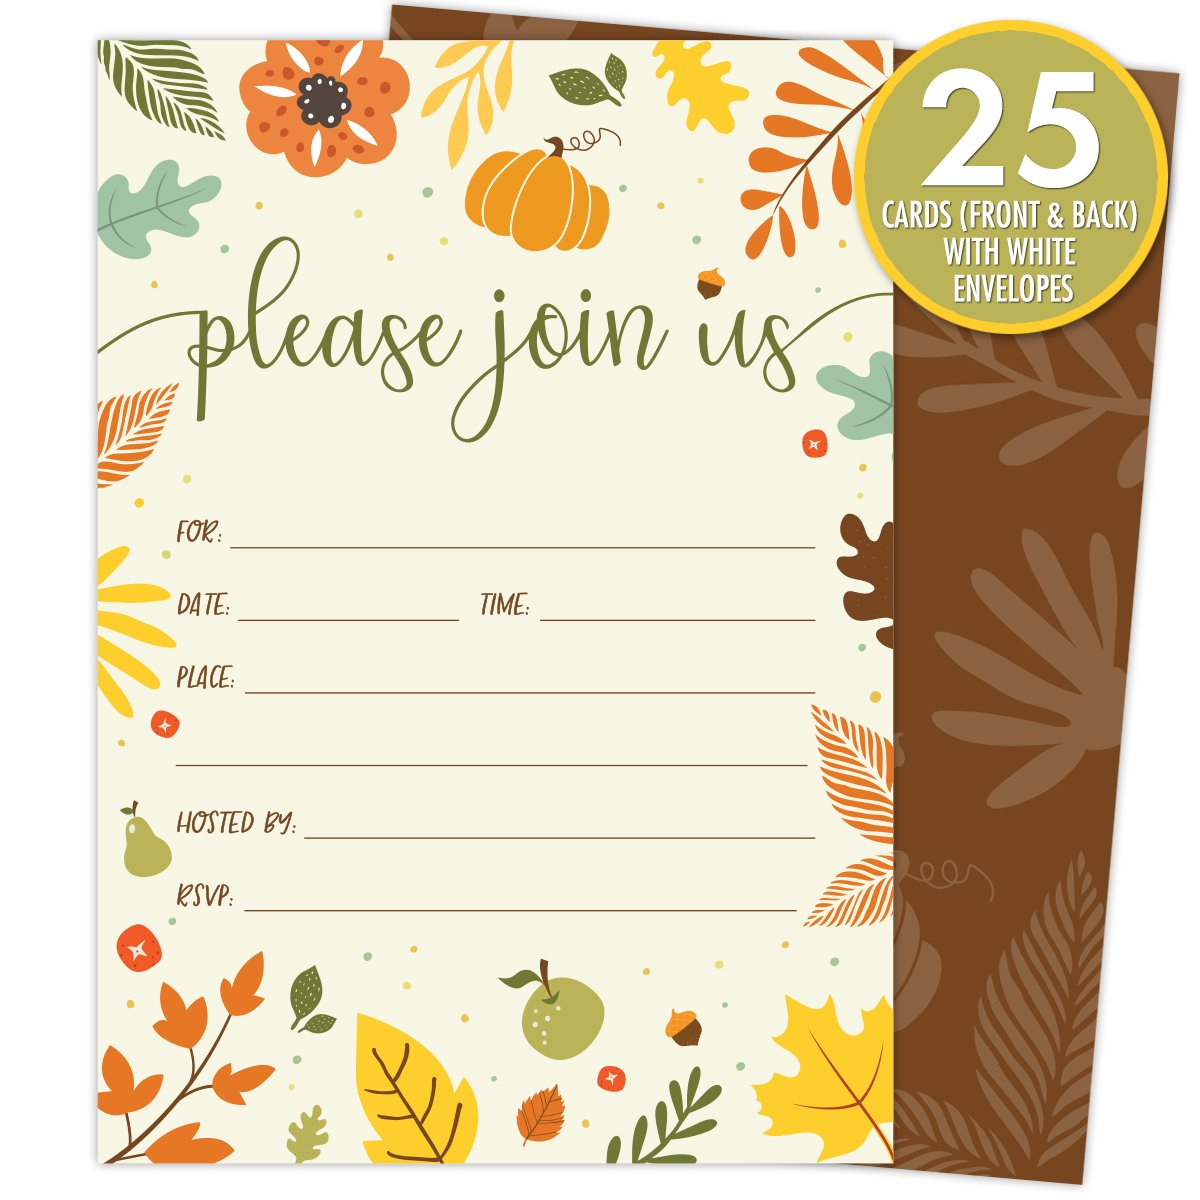 Koko Paper Co Fall Invitations in Autumn Colors with Pumpkin, Fruits and Florals. 25 Fill In Style Cards and Envelopes for Thanksgiving, Harvest Party, Birthday, Engagement, Bridal and Baby Shower, or by Koko Paper Co (Image #2)